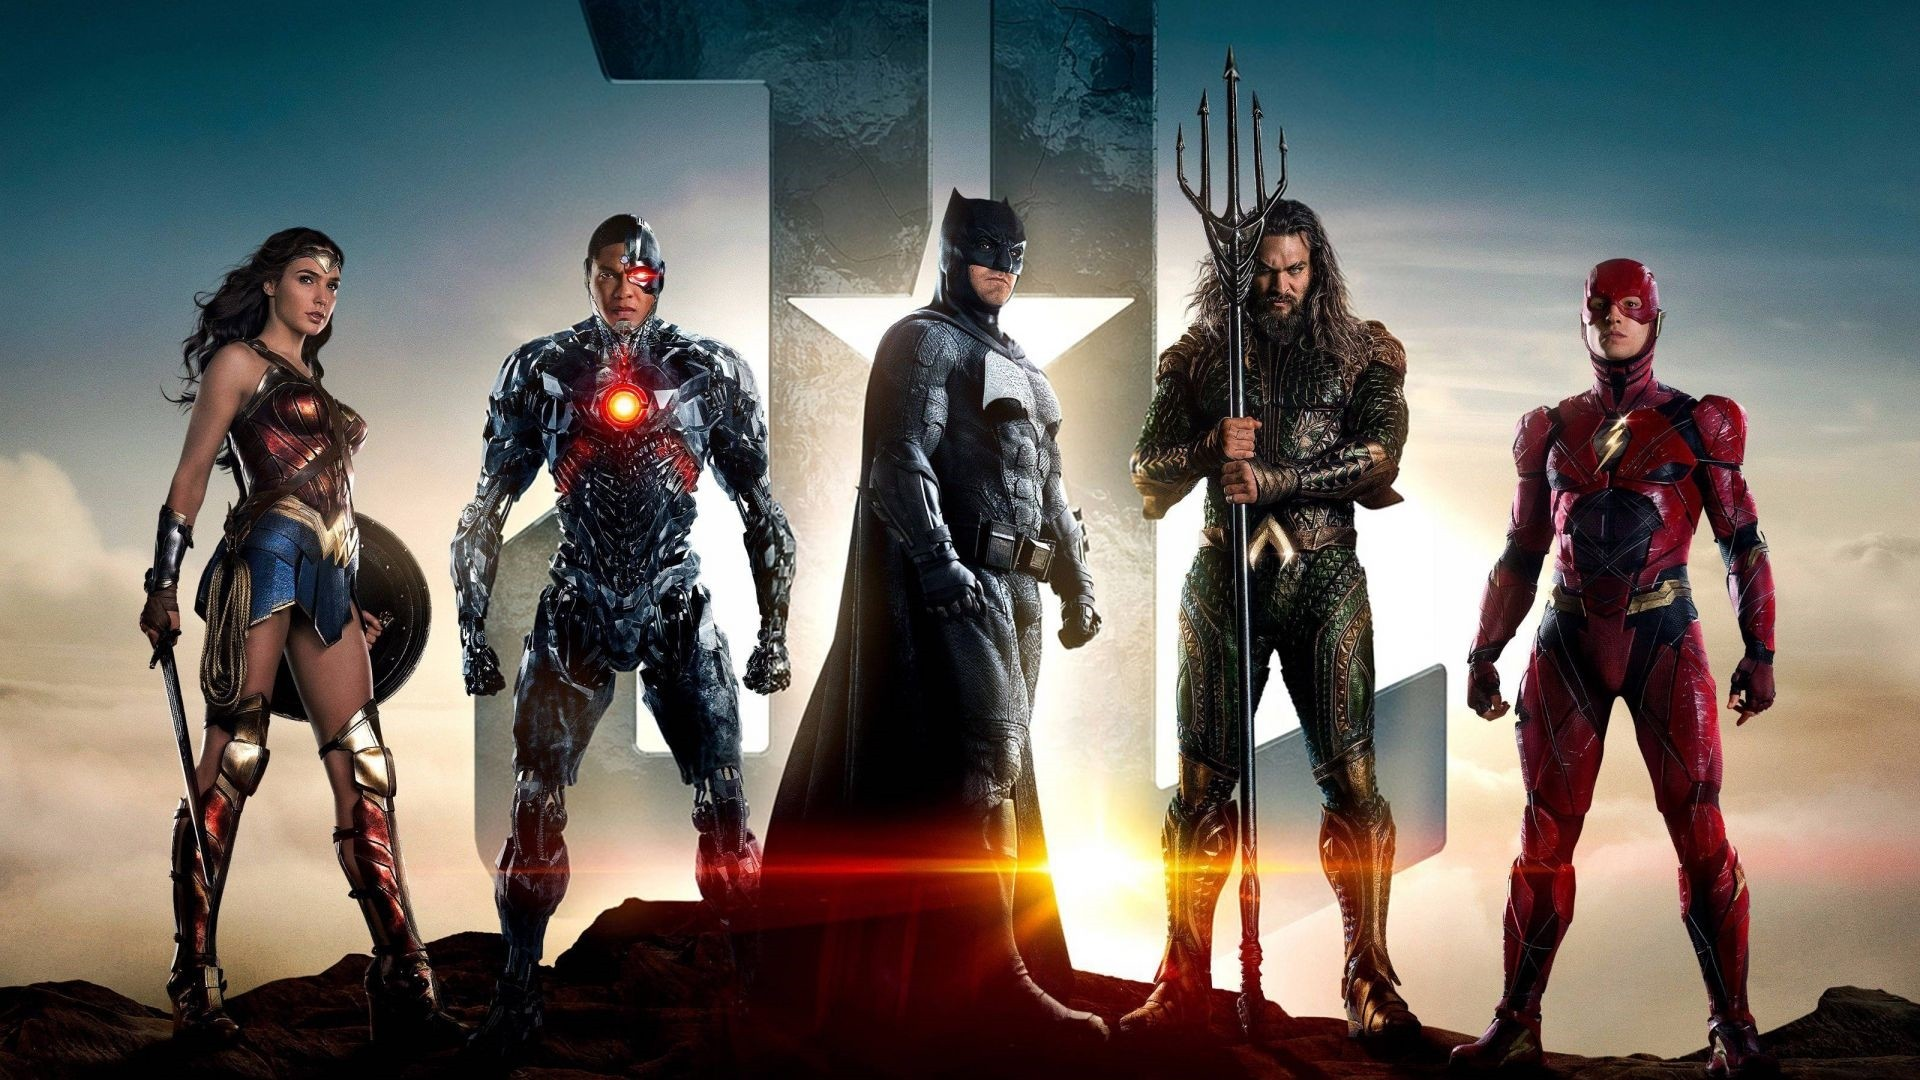 Justice League Poster Wallpaper theme